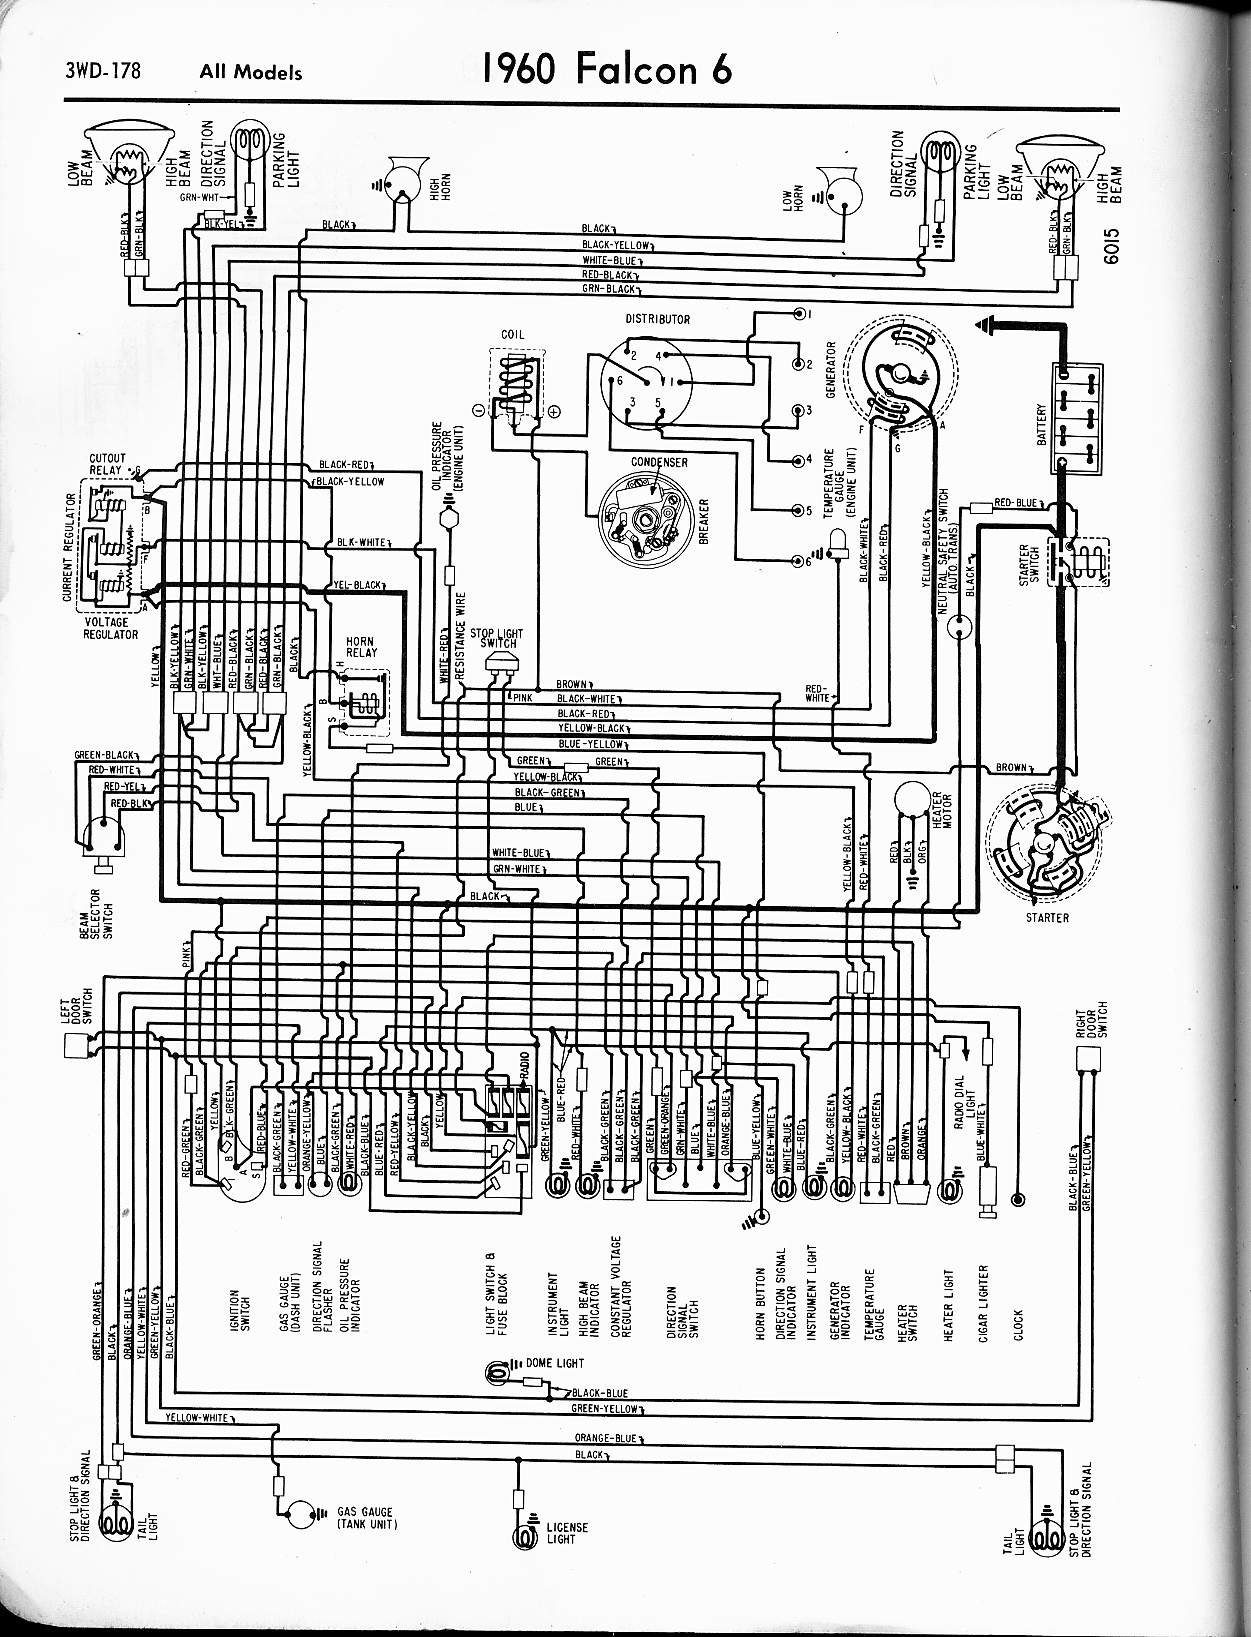 ford falcon wiring diagram on old pioneer car stereo wiring diagram